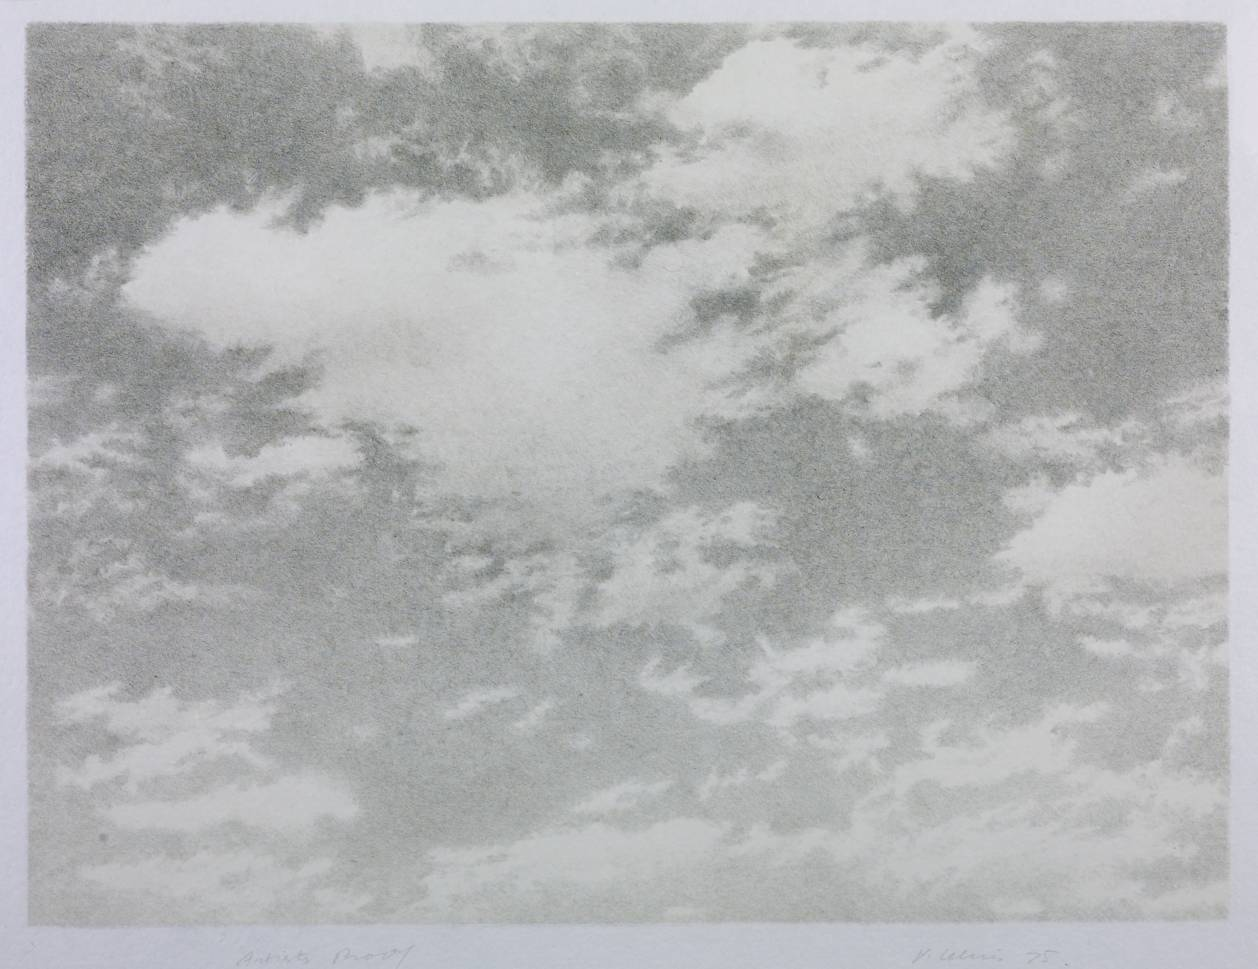 Sky, 1975, Vija Celmins, Lithograph on paper, (Image courtesy of the Tate, London)